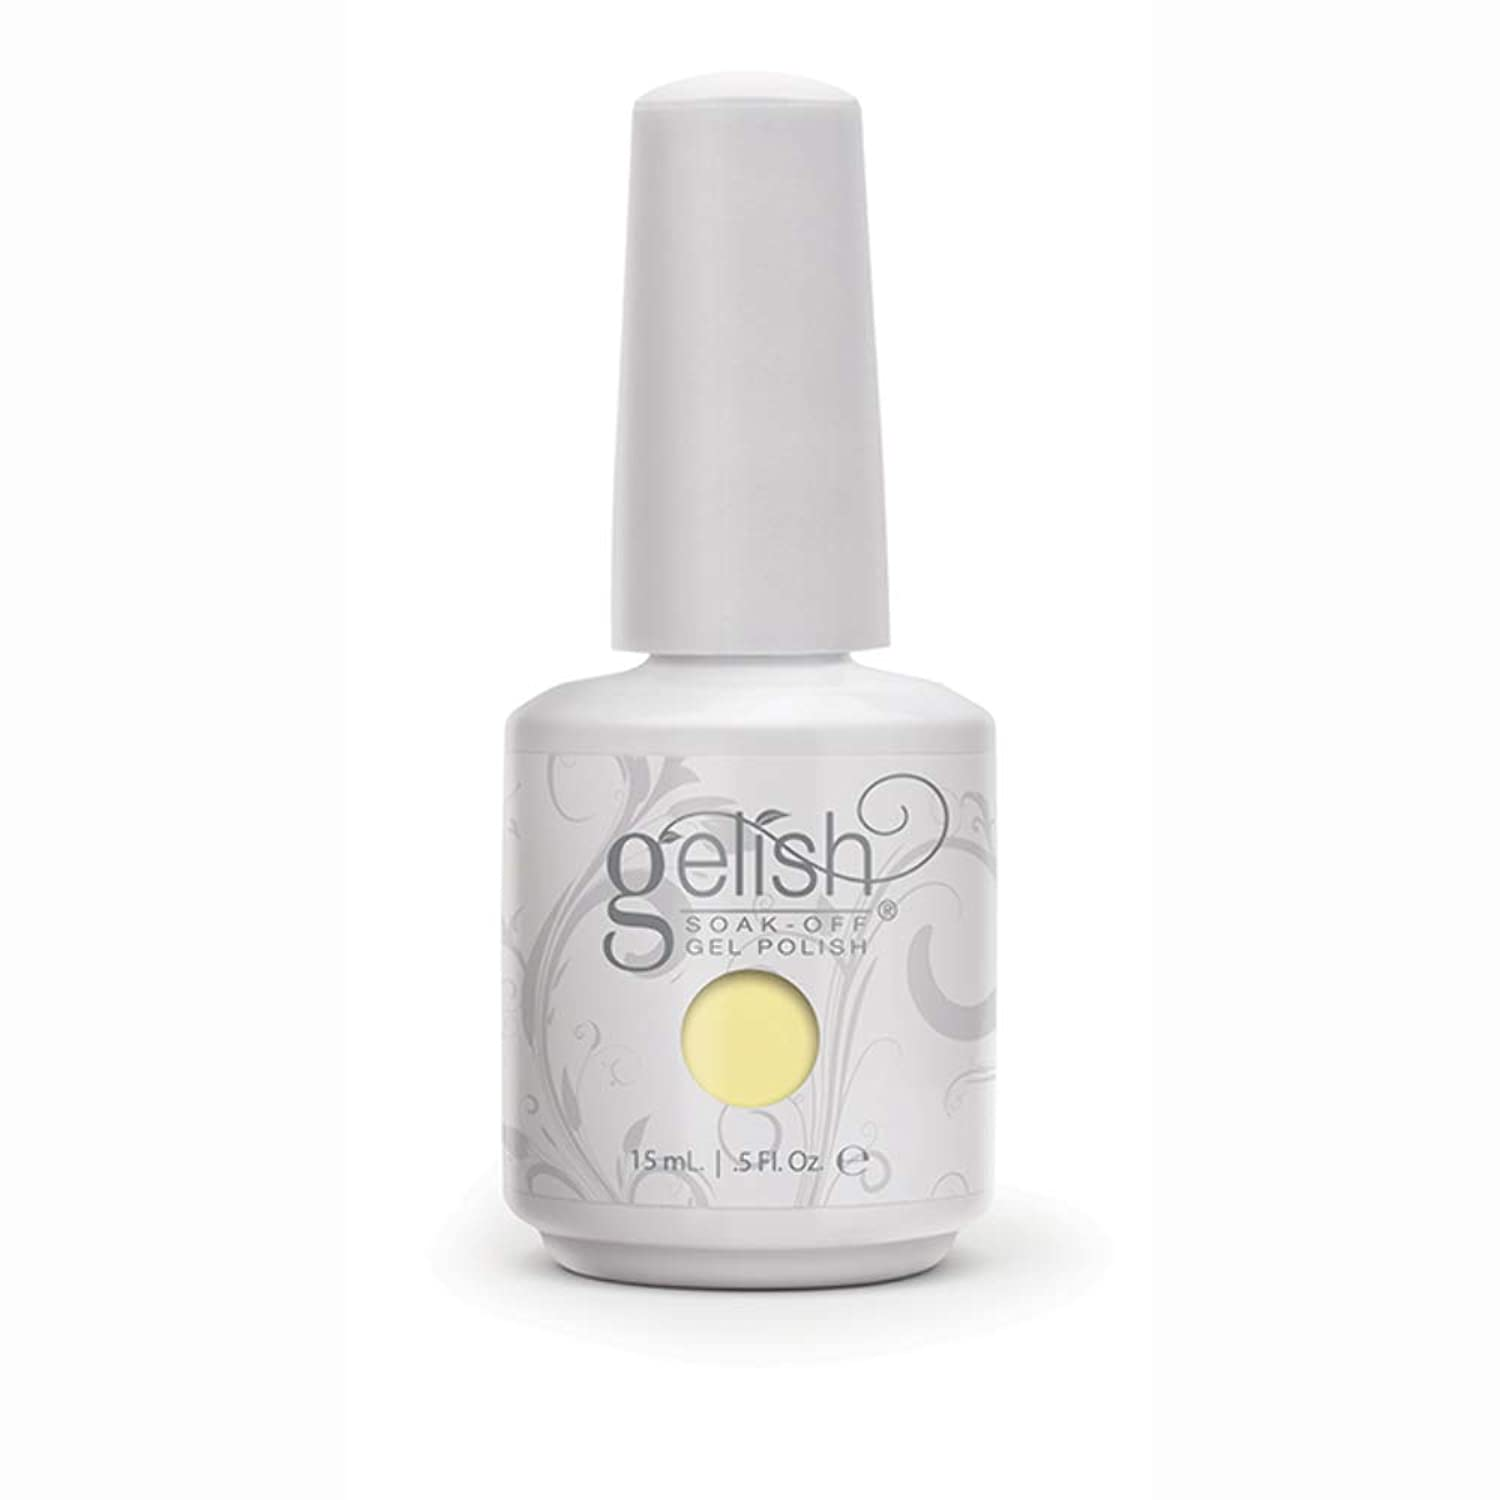 Harmony Gelish Gel Polish - Days in the Sun - 0.5oz/15ml